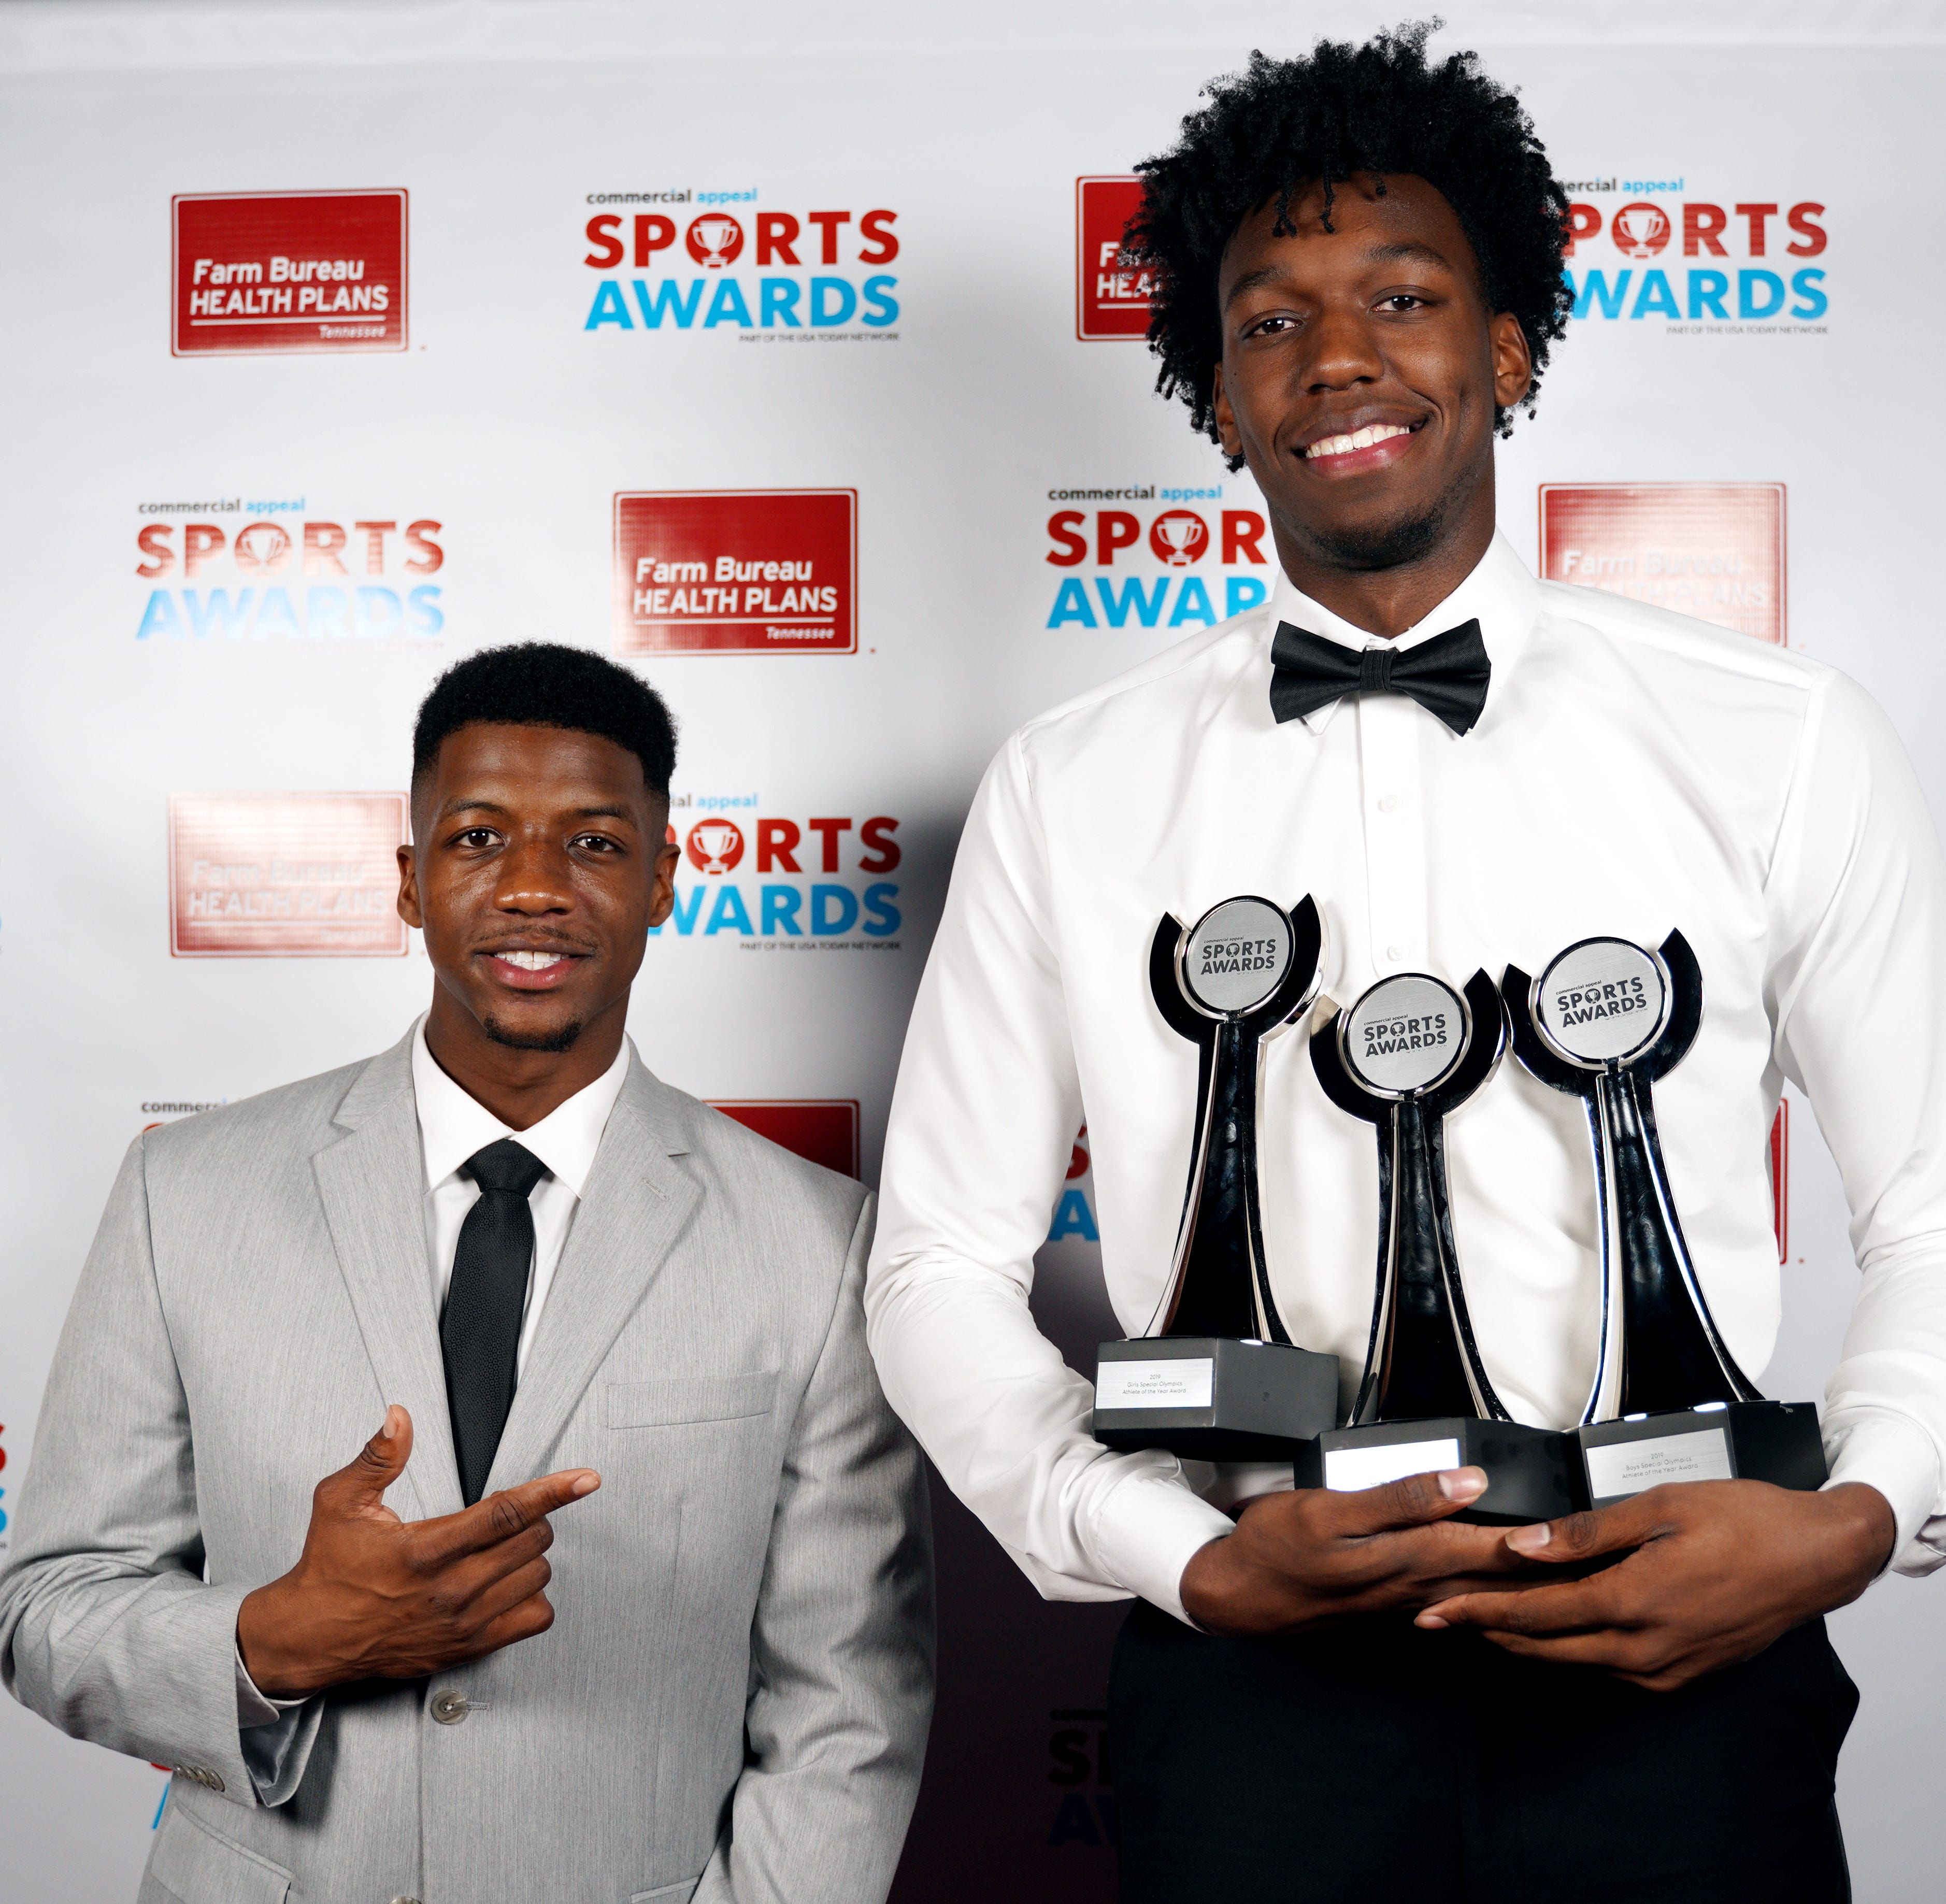 See who were the winners from the Commercial Appeal Sports Awards from Friday night